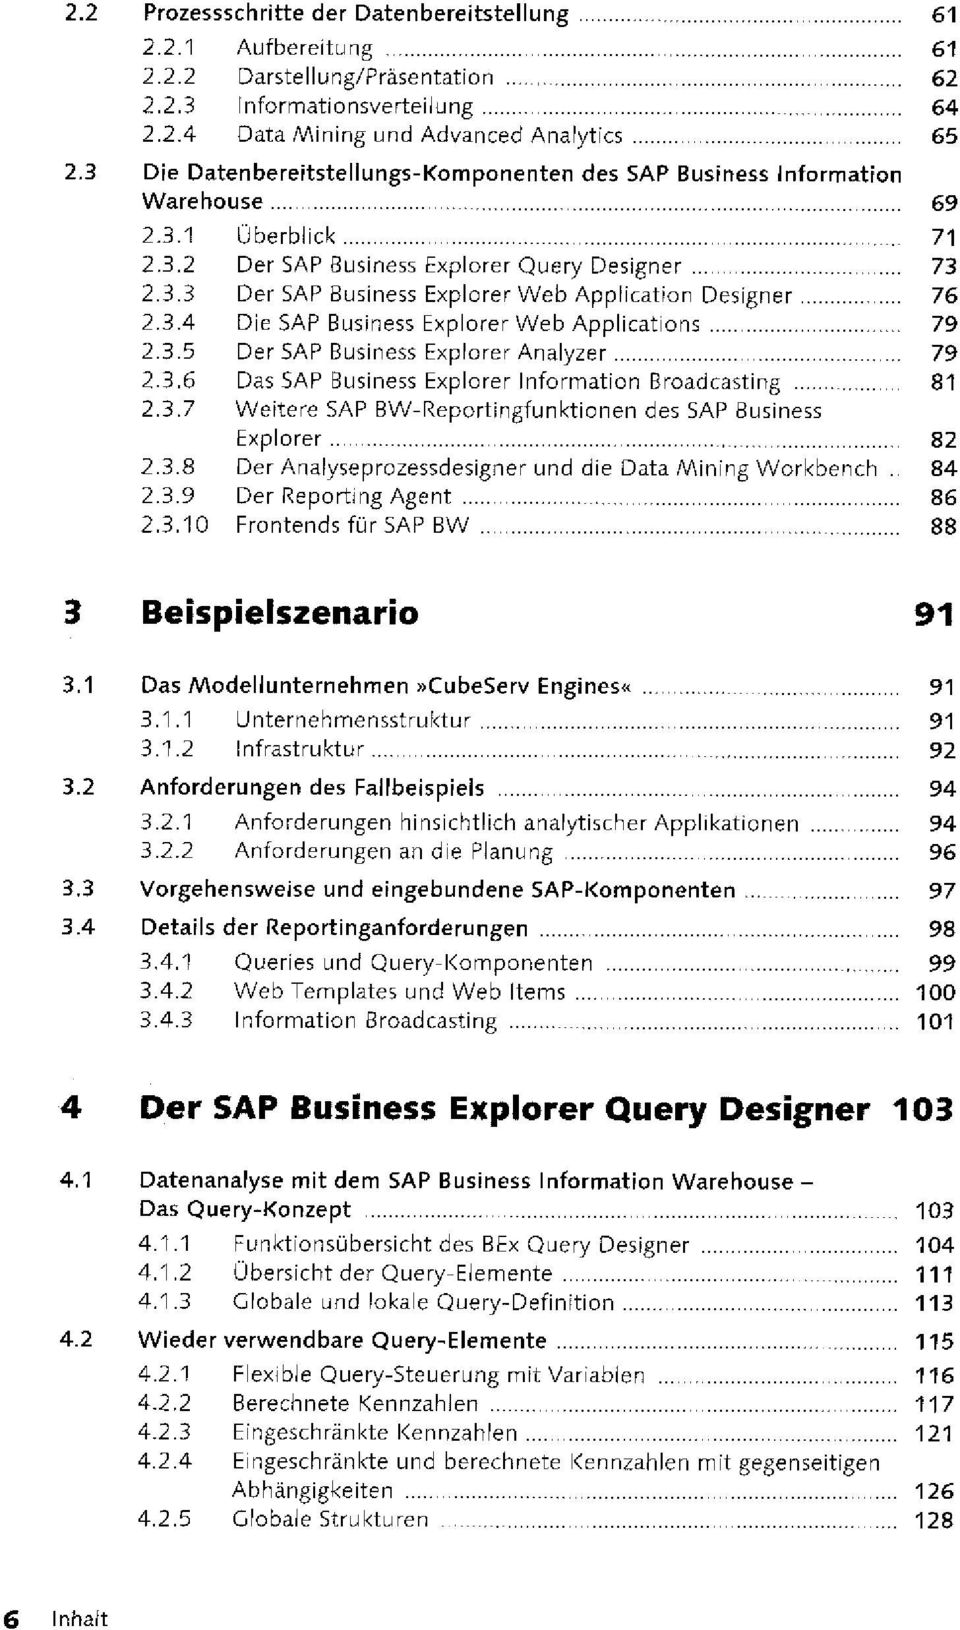 3.4 Die SAP Business Explorer Web Applications 79 2.3.5 Der SAP Business Explorer Analyzer 79 2.3.6 Das SAP Business Explorer Information Broadcasting 81 2.3.7 Weitere SAP BW-Reportingfunktionen des SAP Business Explorer 82 2.